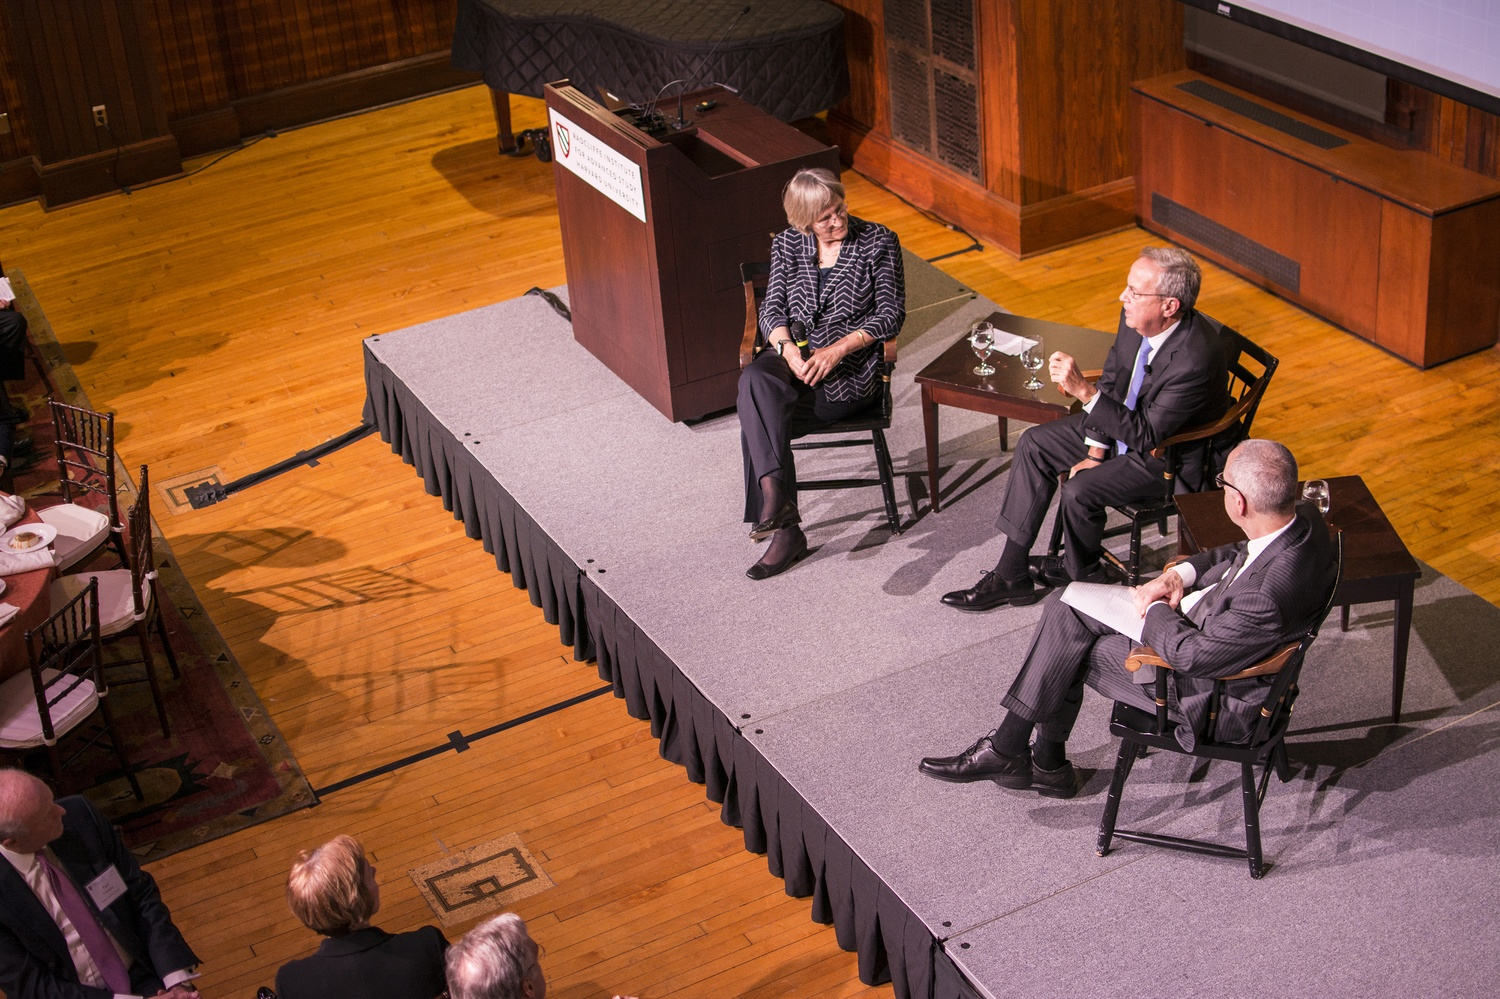 University President Drew G. Faust leads a discussion on the future of university education with Richard C. Levin and David J. Skorton, the former presidents of Yale and Cornell, respectively.